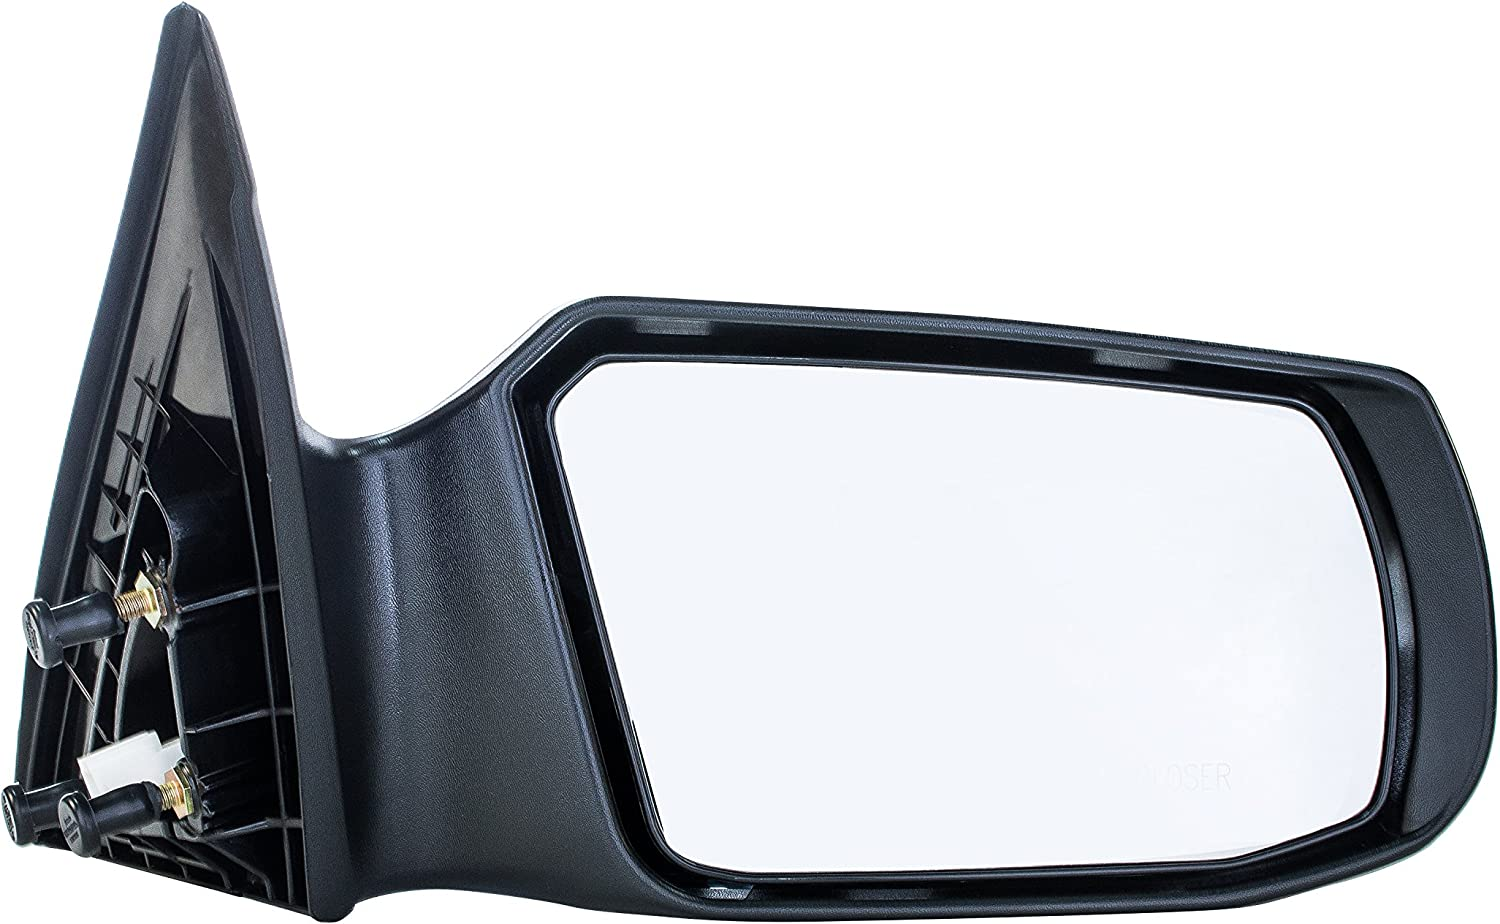 Passenger Power Door Mirror For 2007-2012 Nissan Altima Sedan Right Side View RH